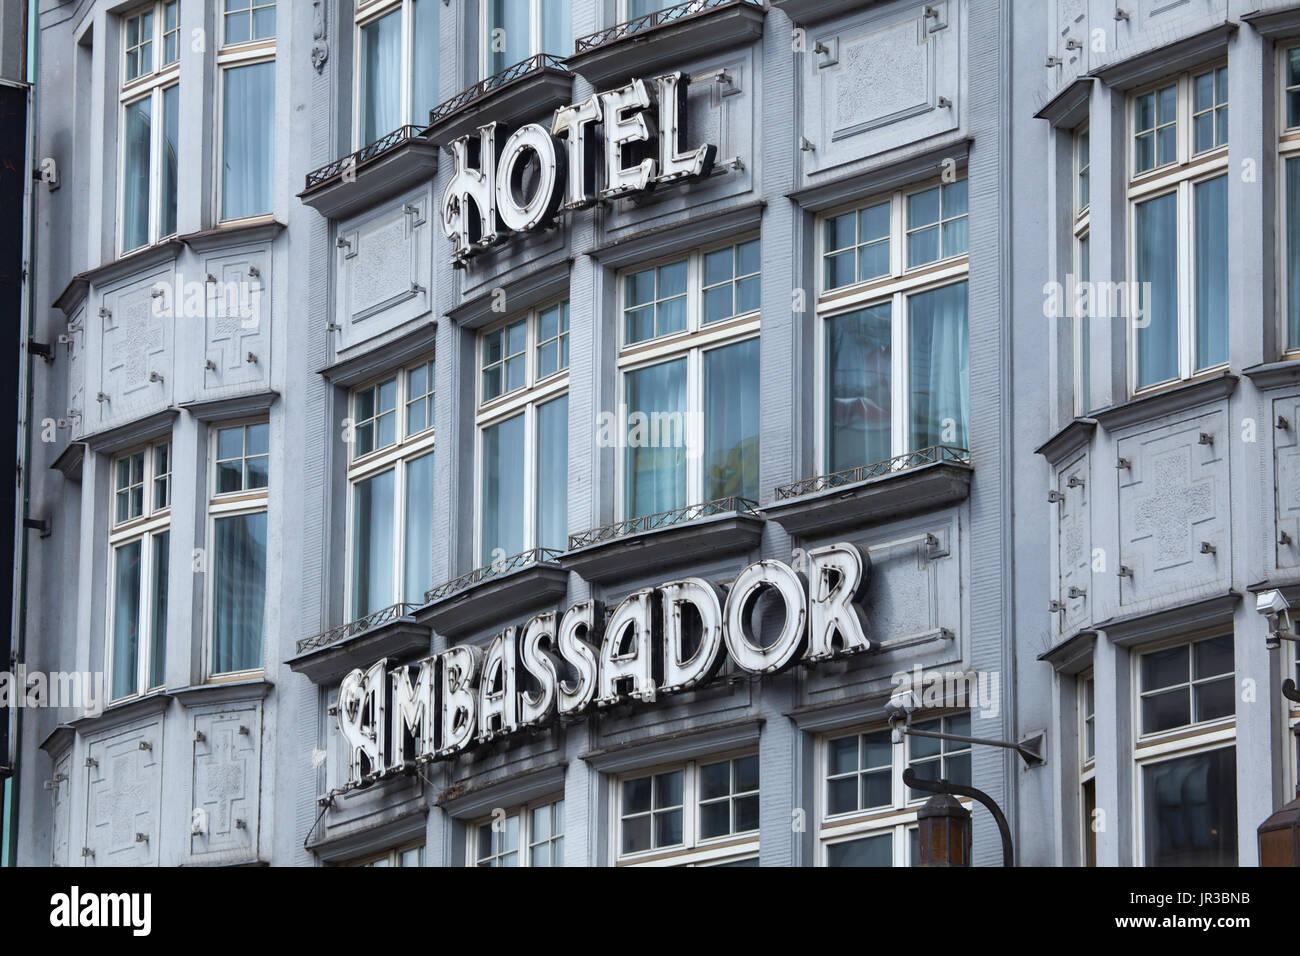 Hotel Ambassador in Wenceslaus Square in Prague, Czech Republic. The building designed by Czech architects František Weyr and Richard Klenka and built in 1912-1913 as the Passage department store (Obchodní dům Passage). - Stock Image